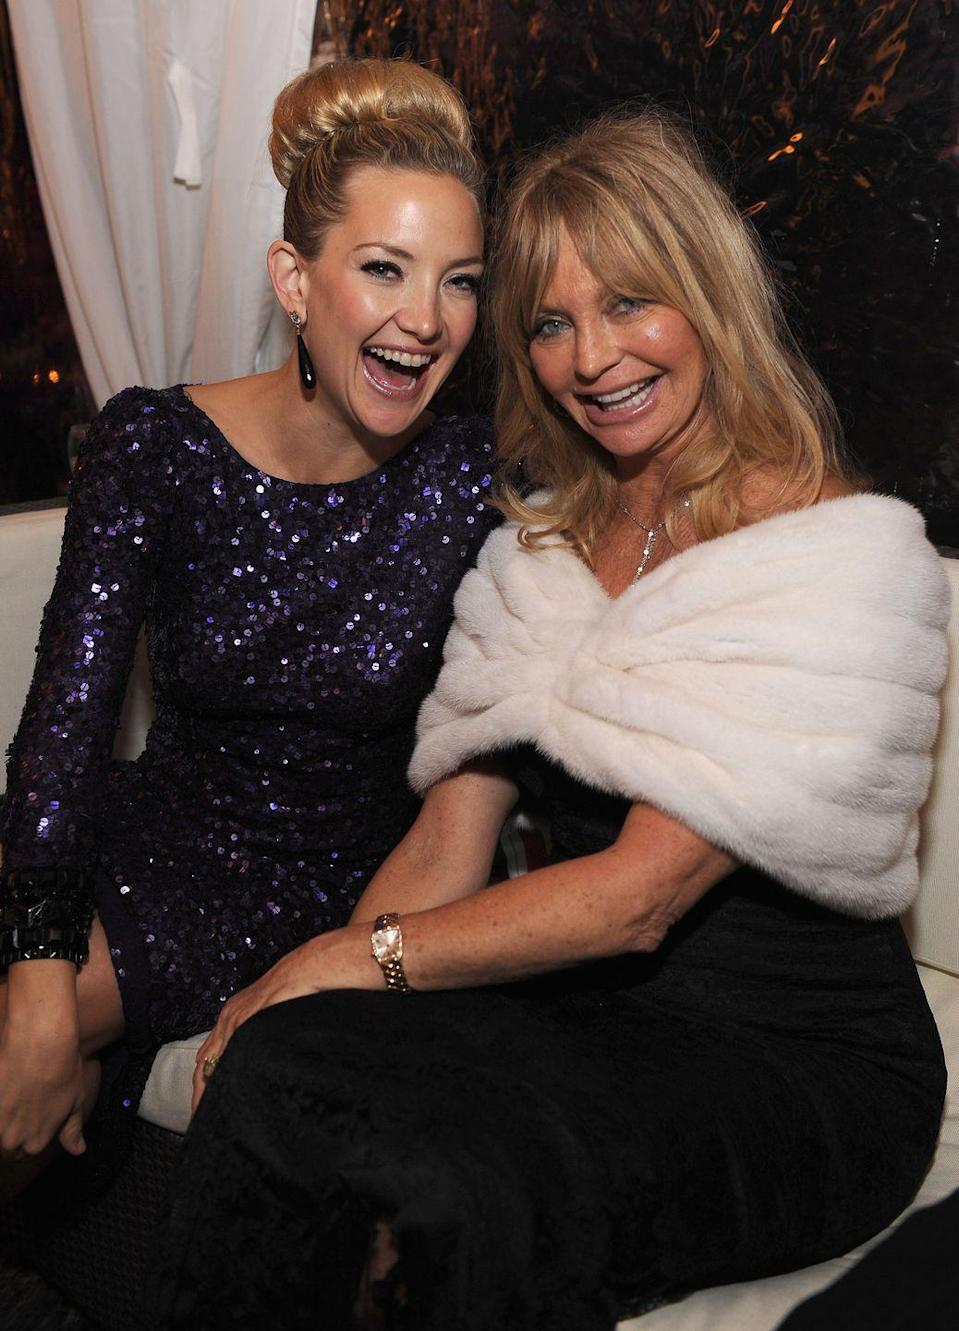 <p> Goldie Hawn passed her signature million dollar smile down to her daughter, Kate Hudson. The duo share a strong resemblance, which is even more apparent in their acting roles. </p>